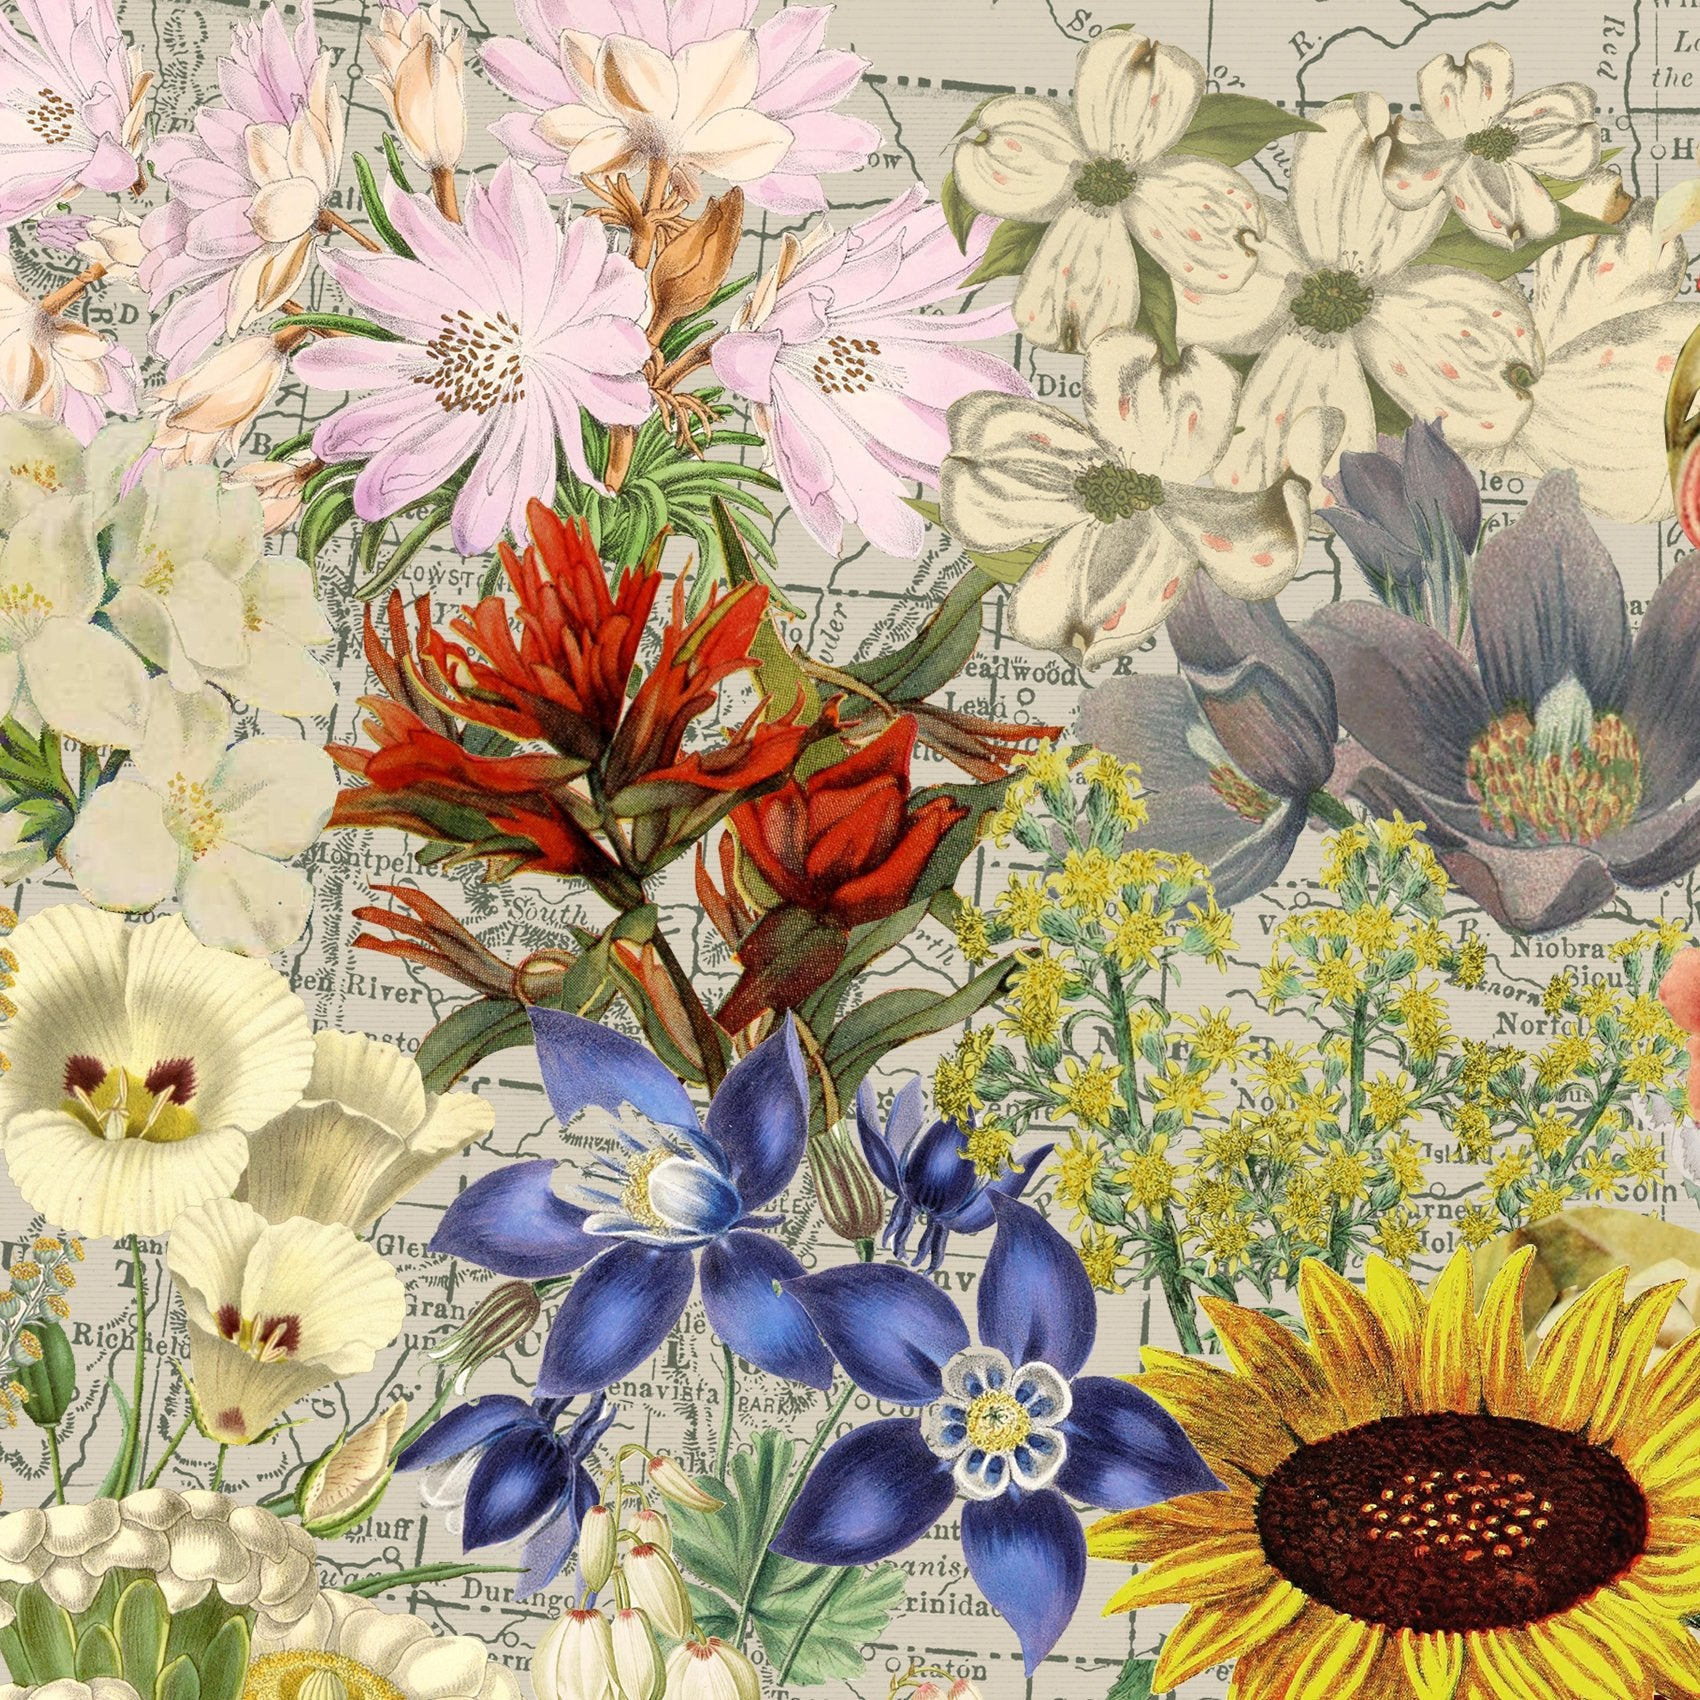 USA state flowers map art zoom